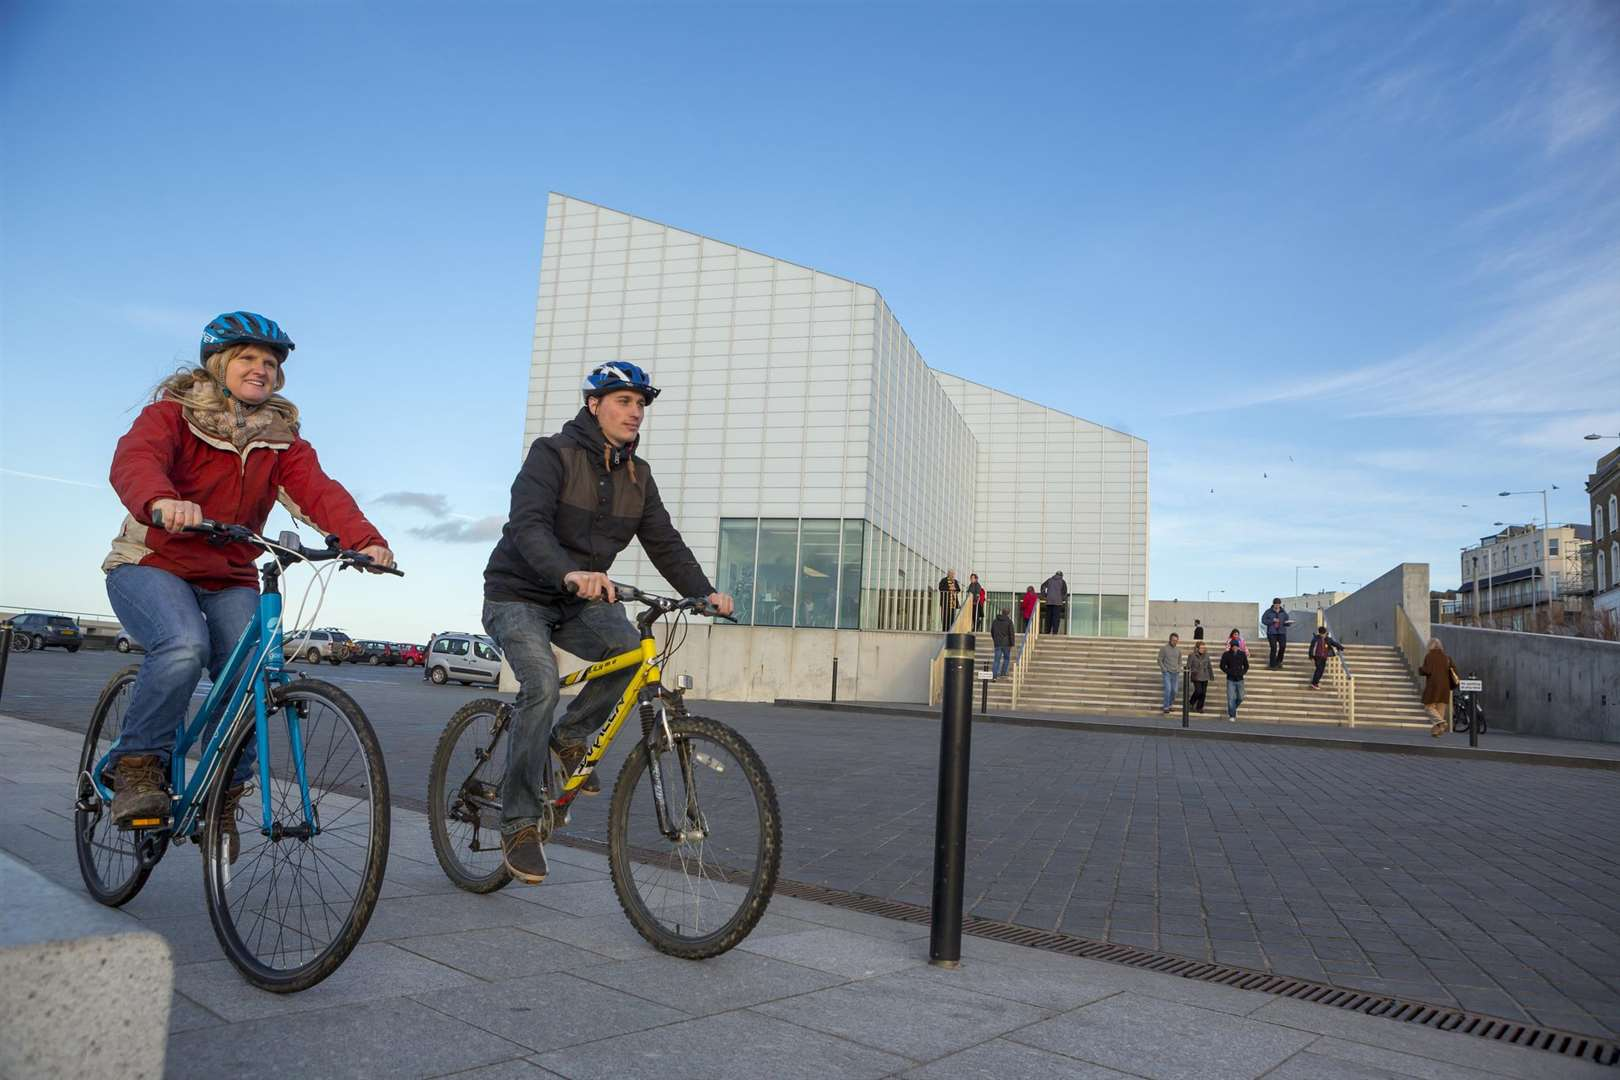 The trail takes you past the Turner Contemporary